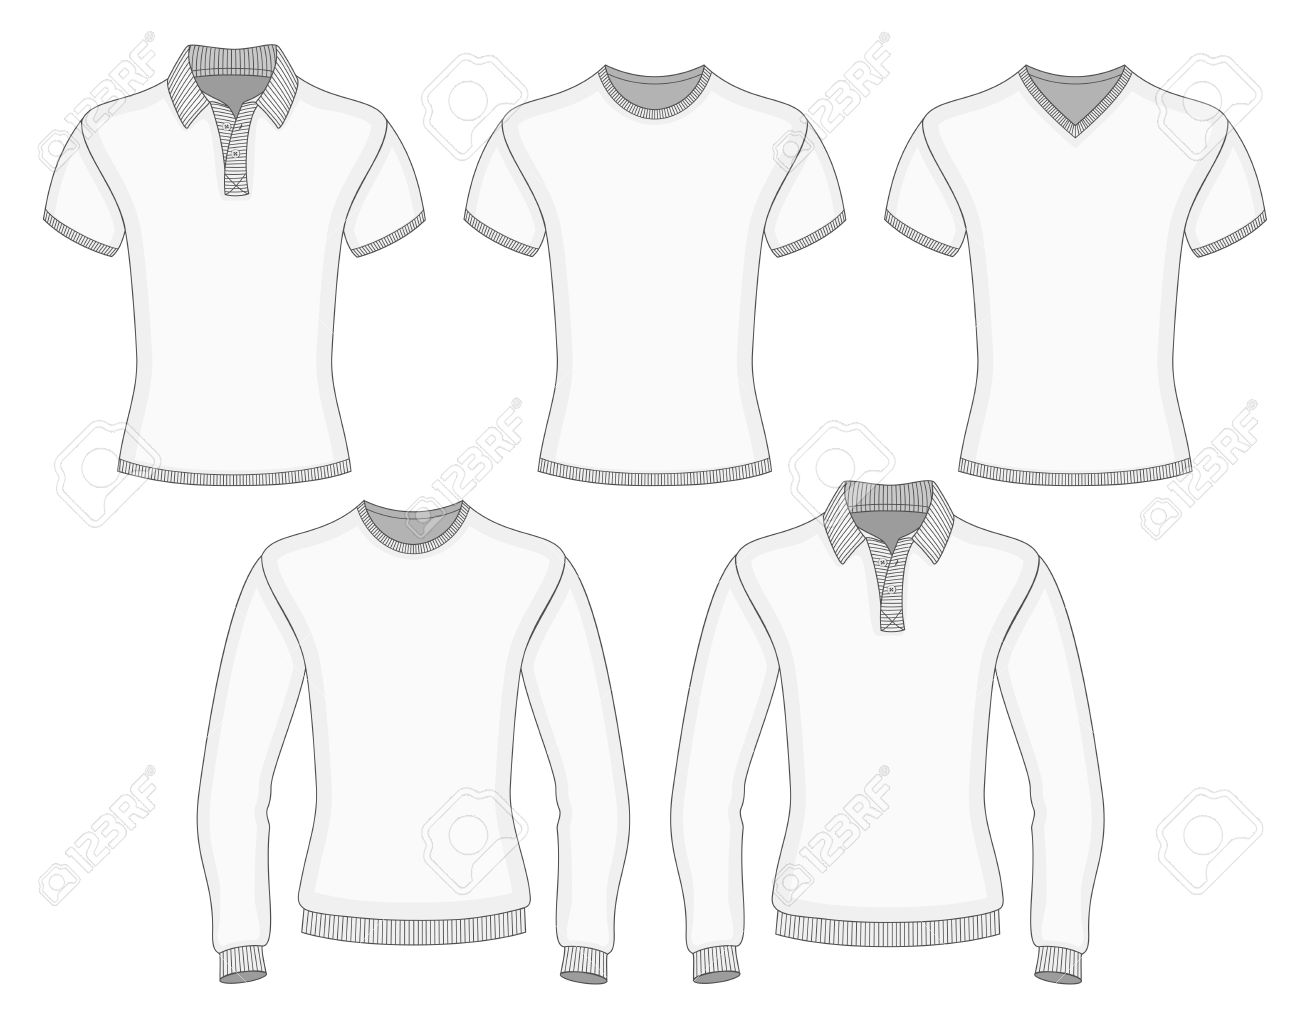 Design t shirt long sleeve - Men S Short And Long Sleeve Polo Shirt And T Shirt Design Templates Front View